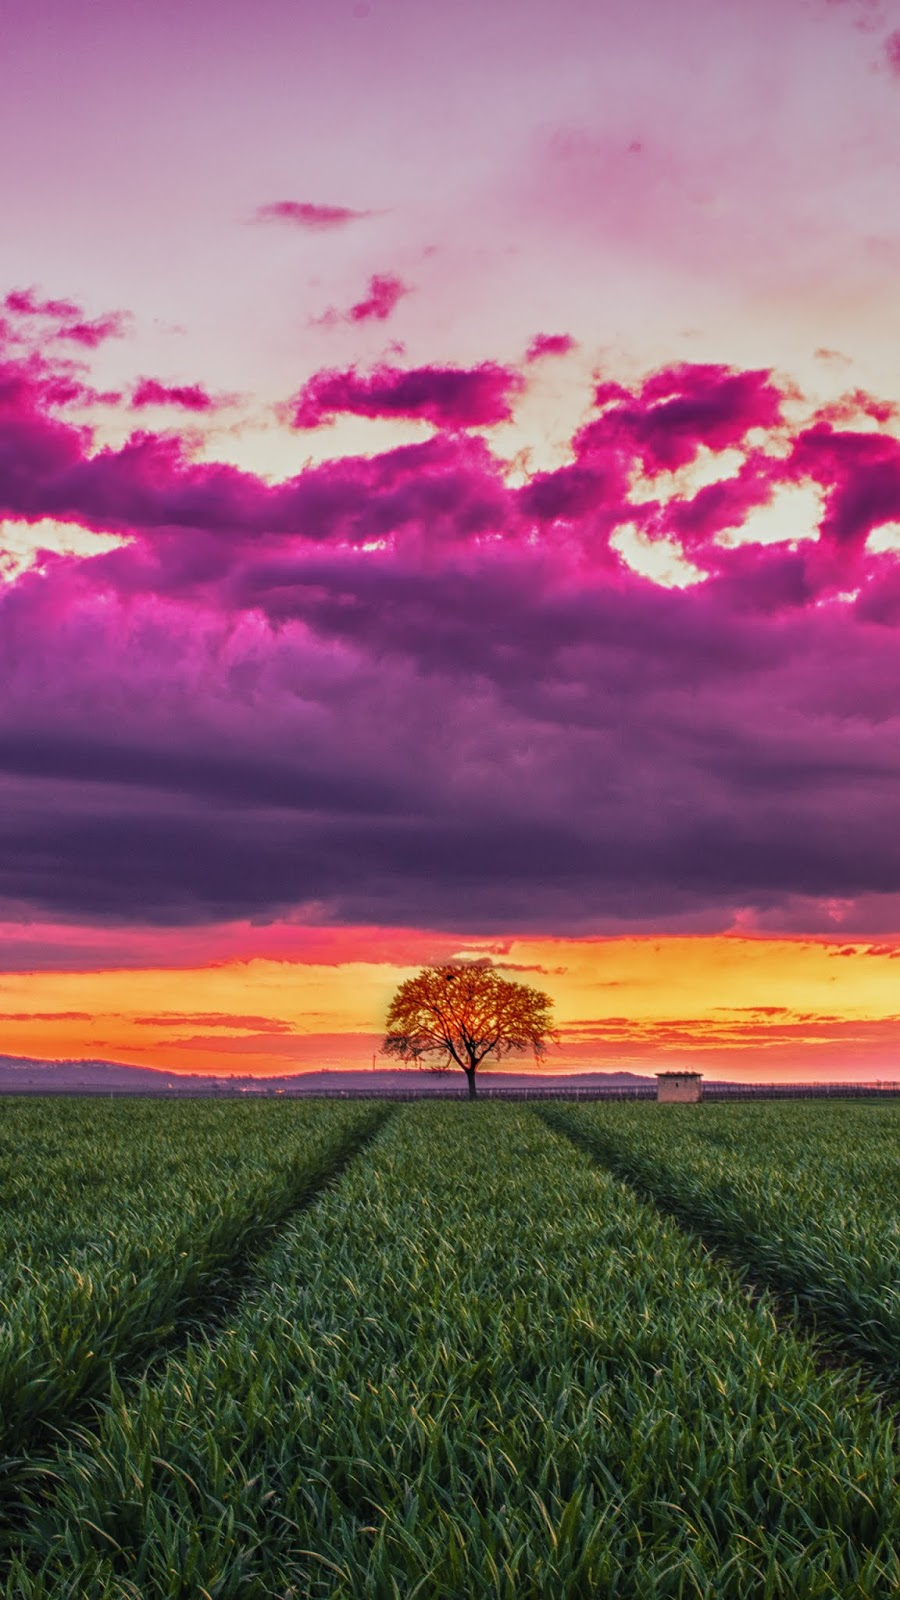 Lonely tree in the twilight sunset